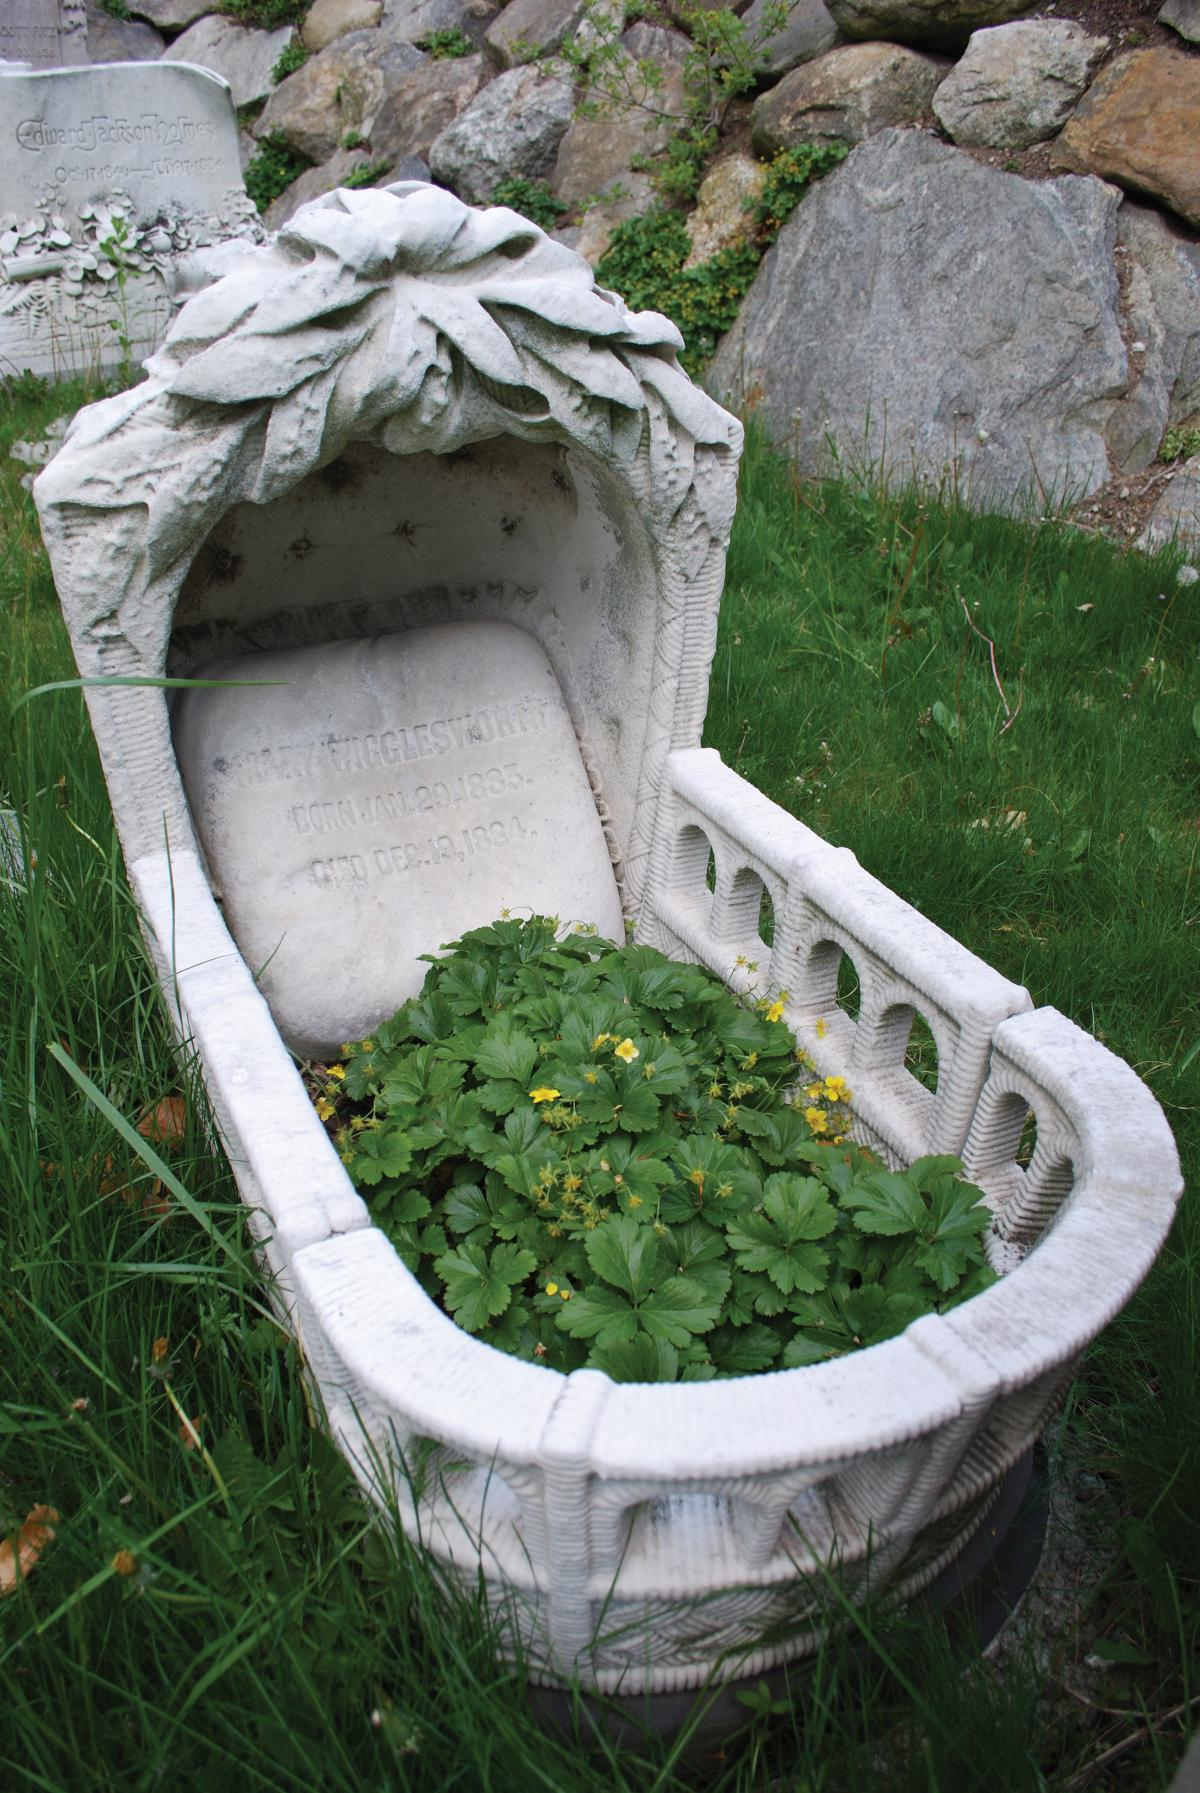 Photograph of a headstone carved into the shape of a cradle